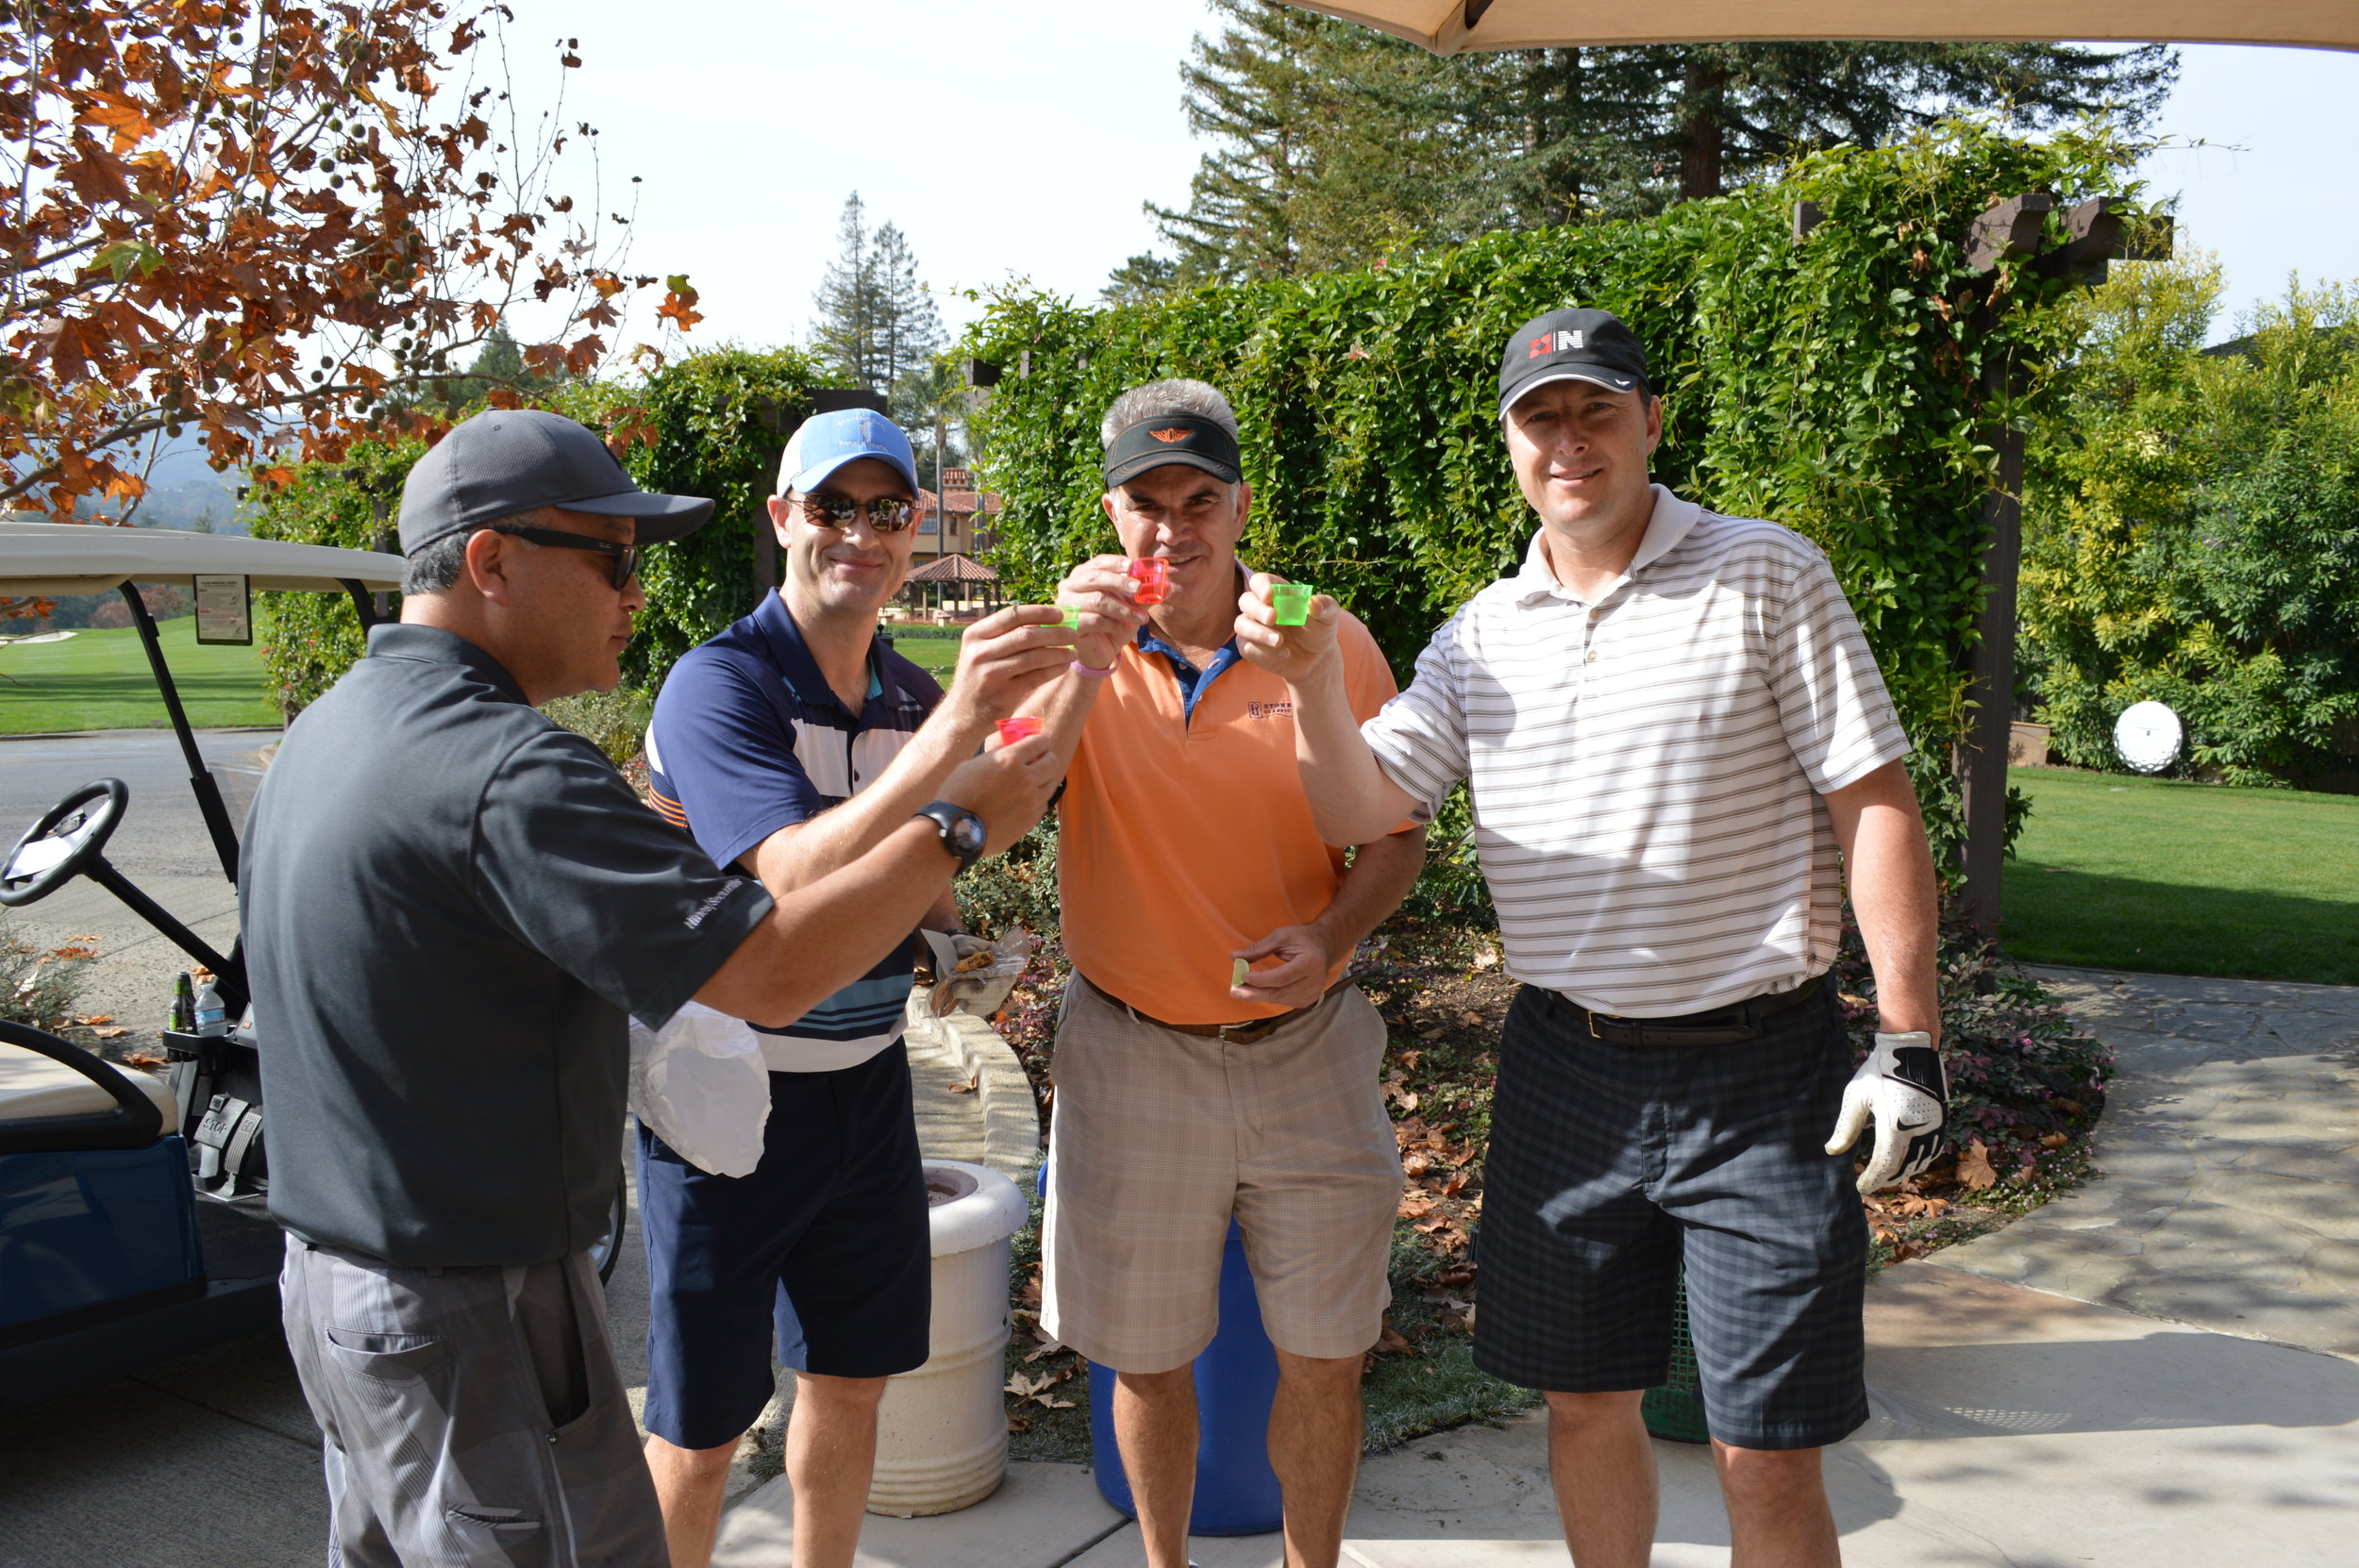 Cheers! The tequila shot 10th hole